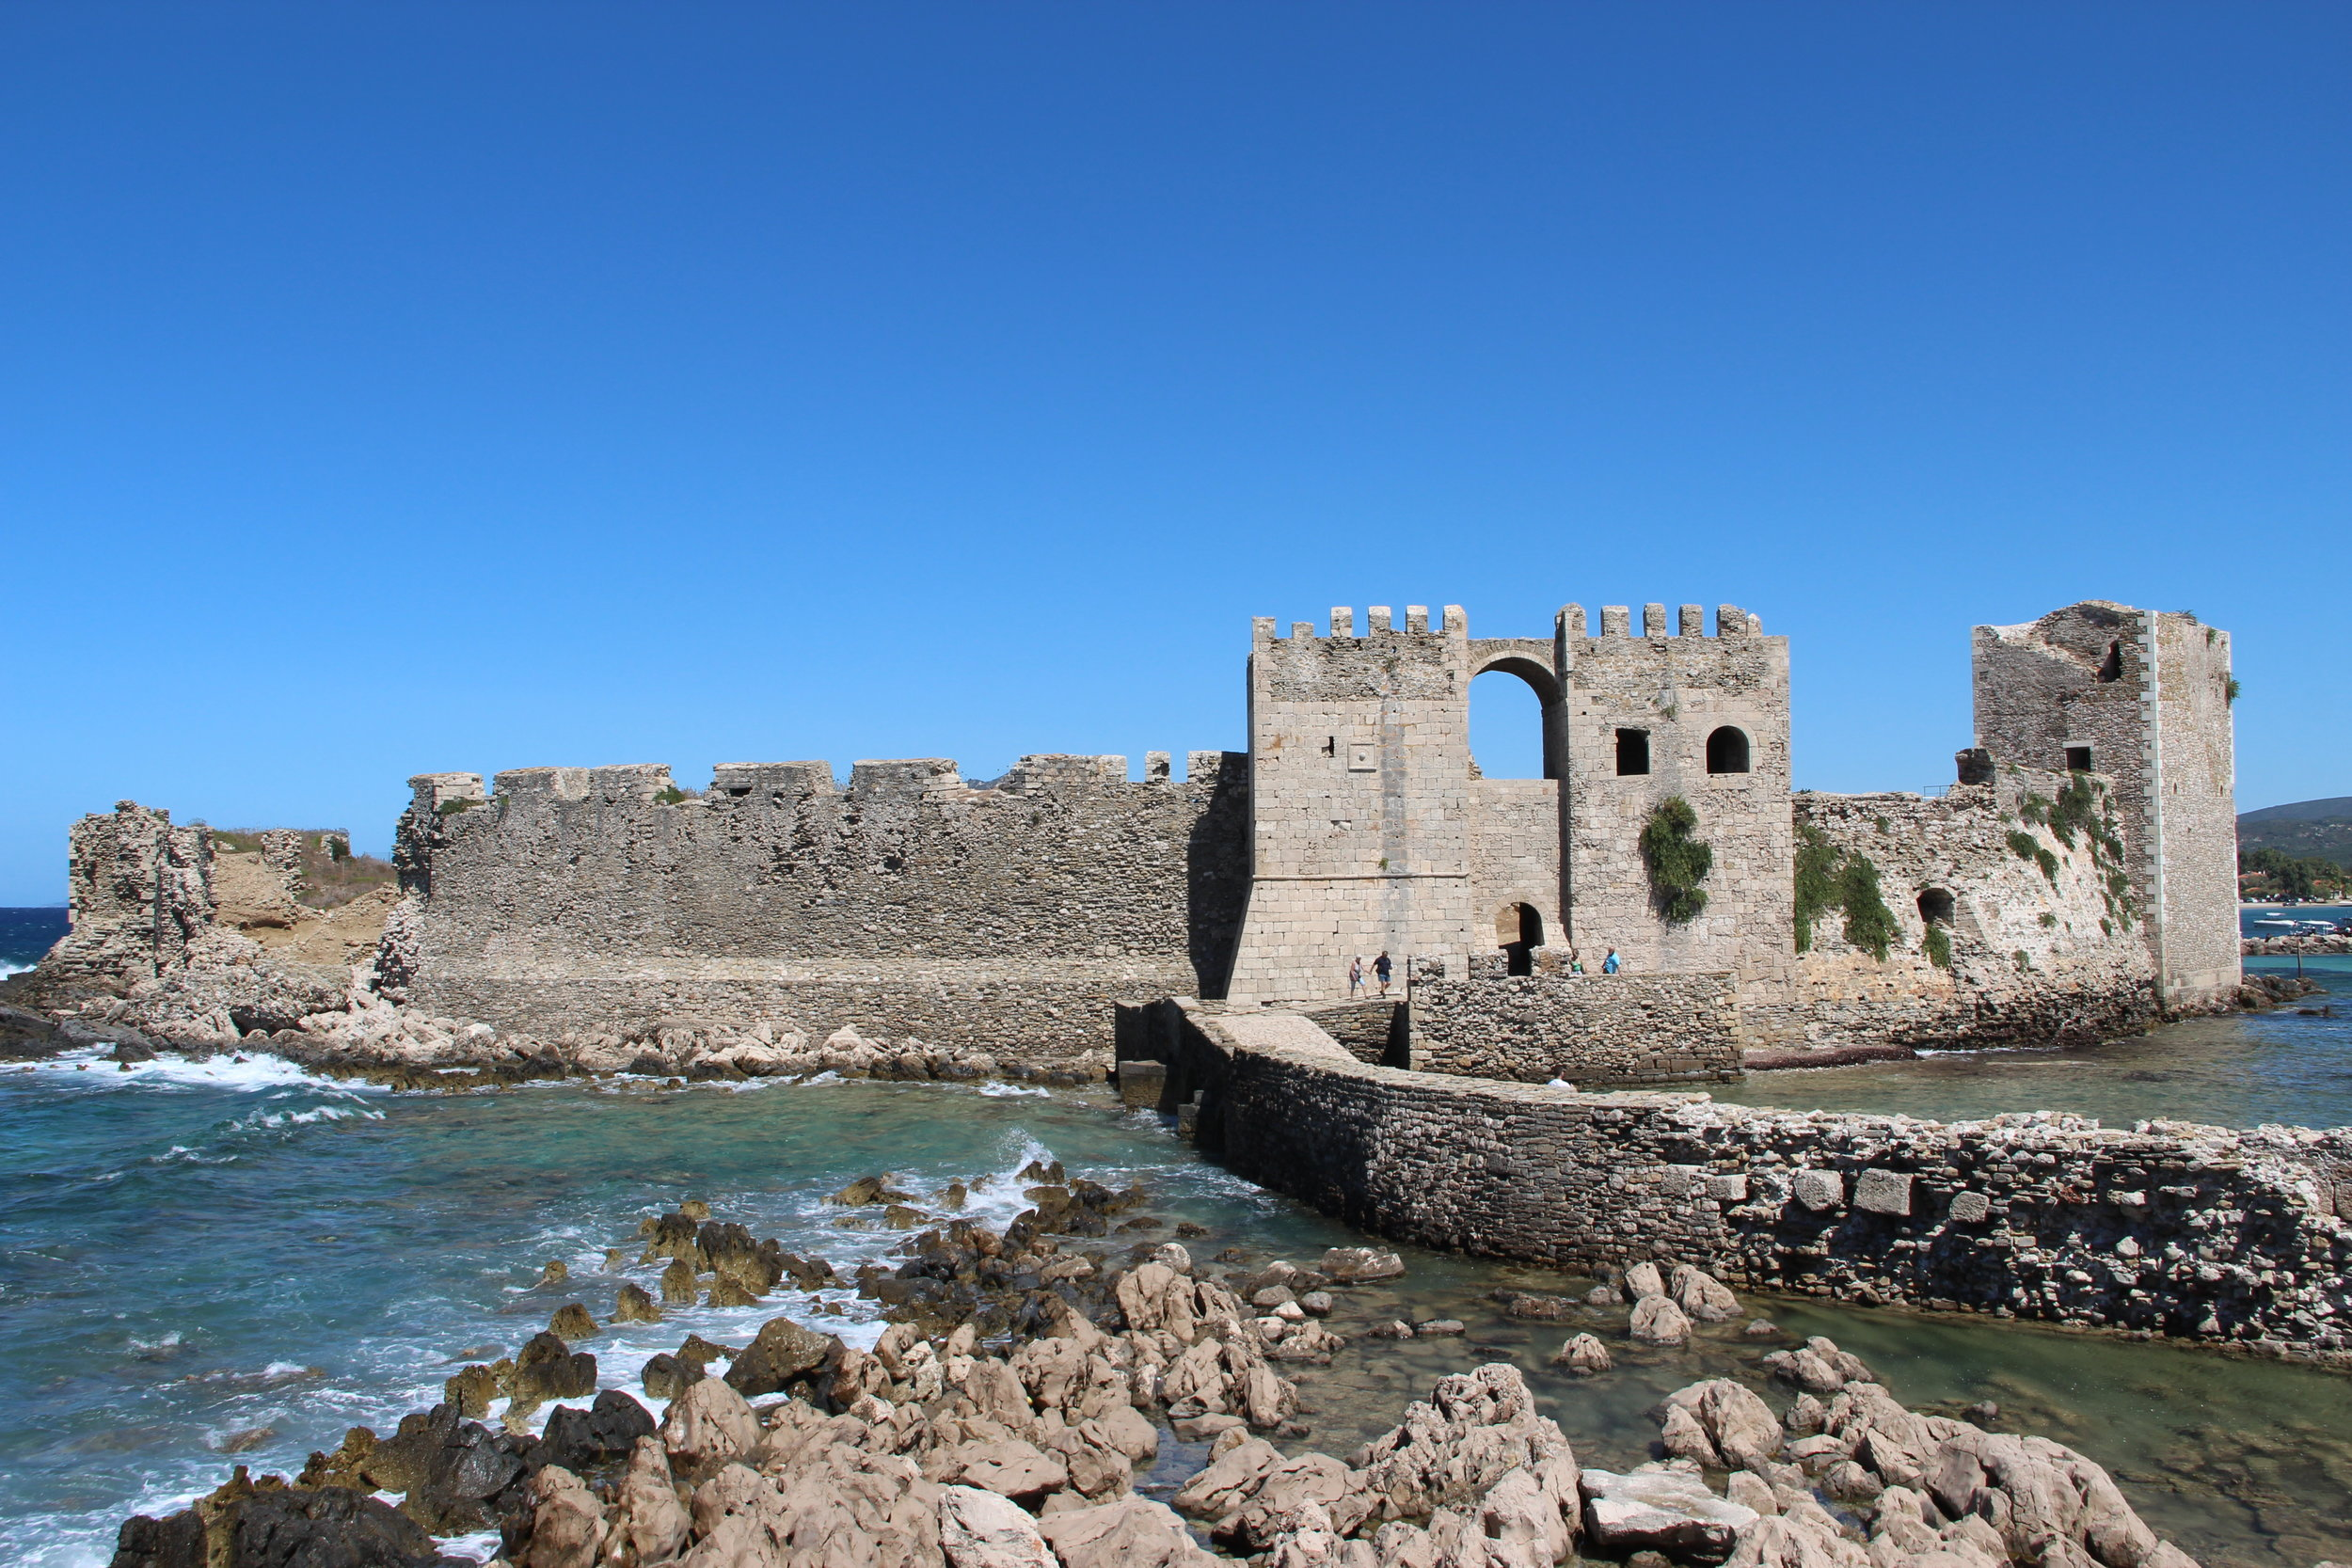 The castle of Methoni out on the promontery